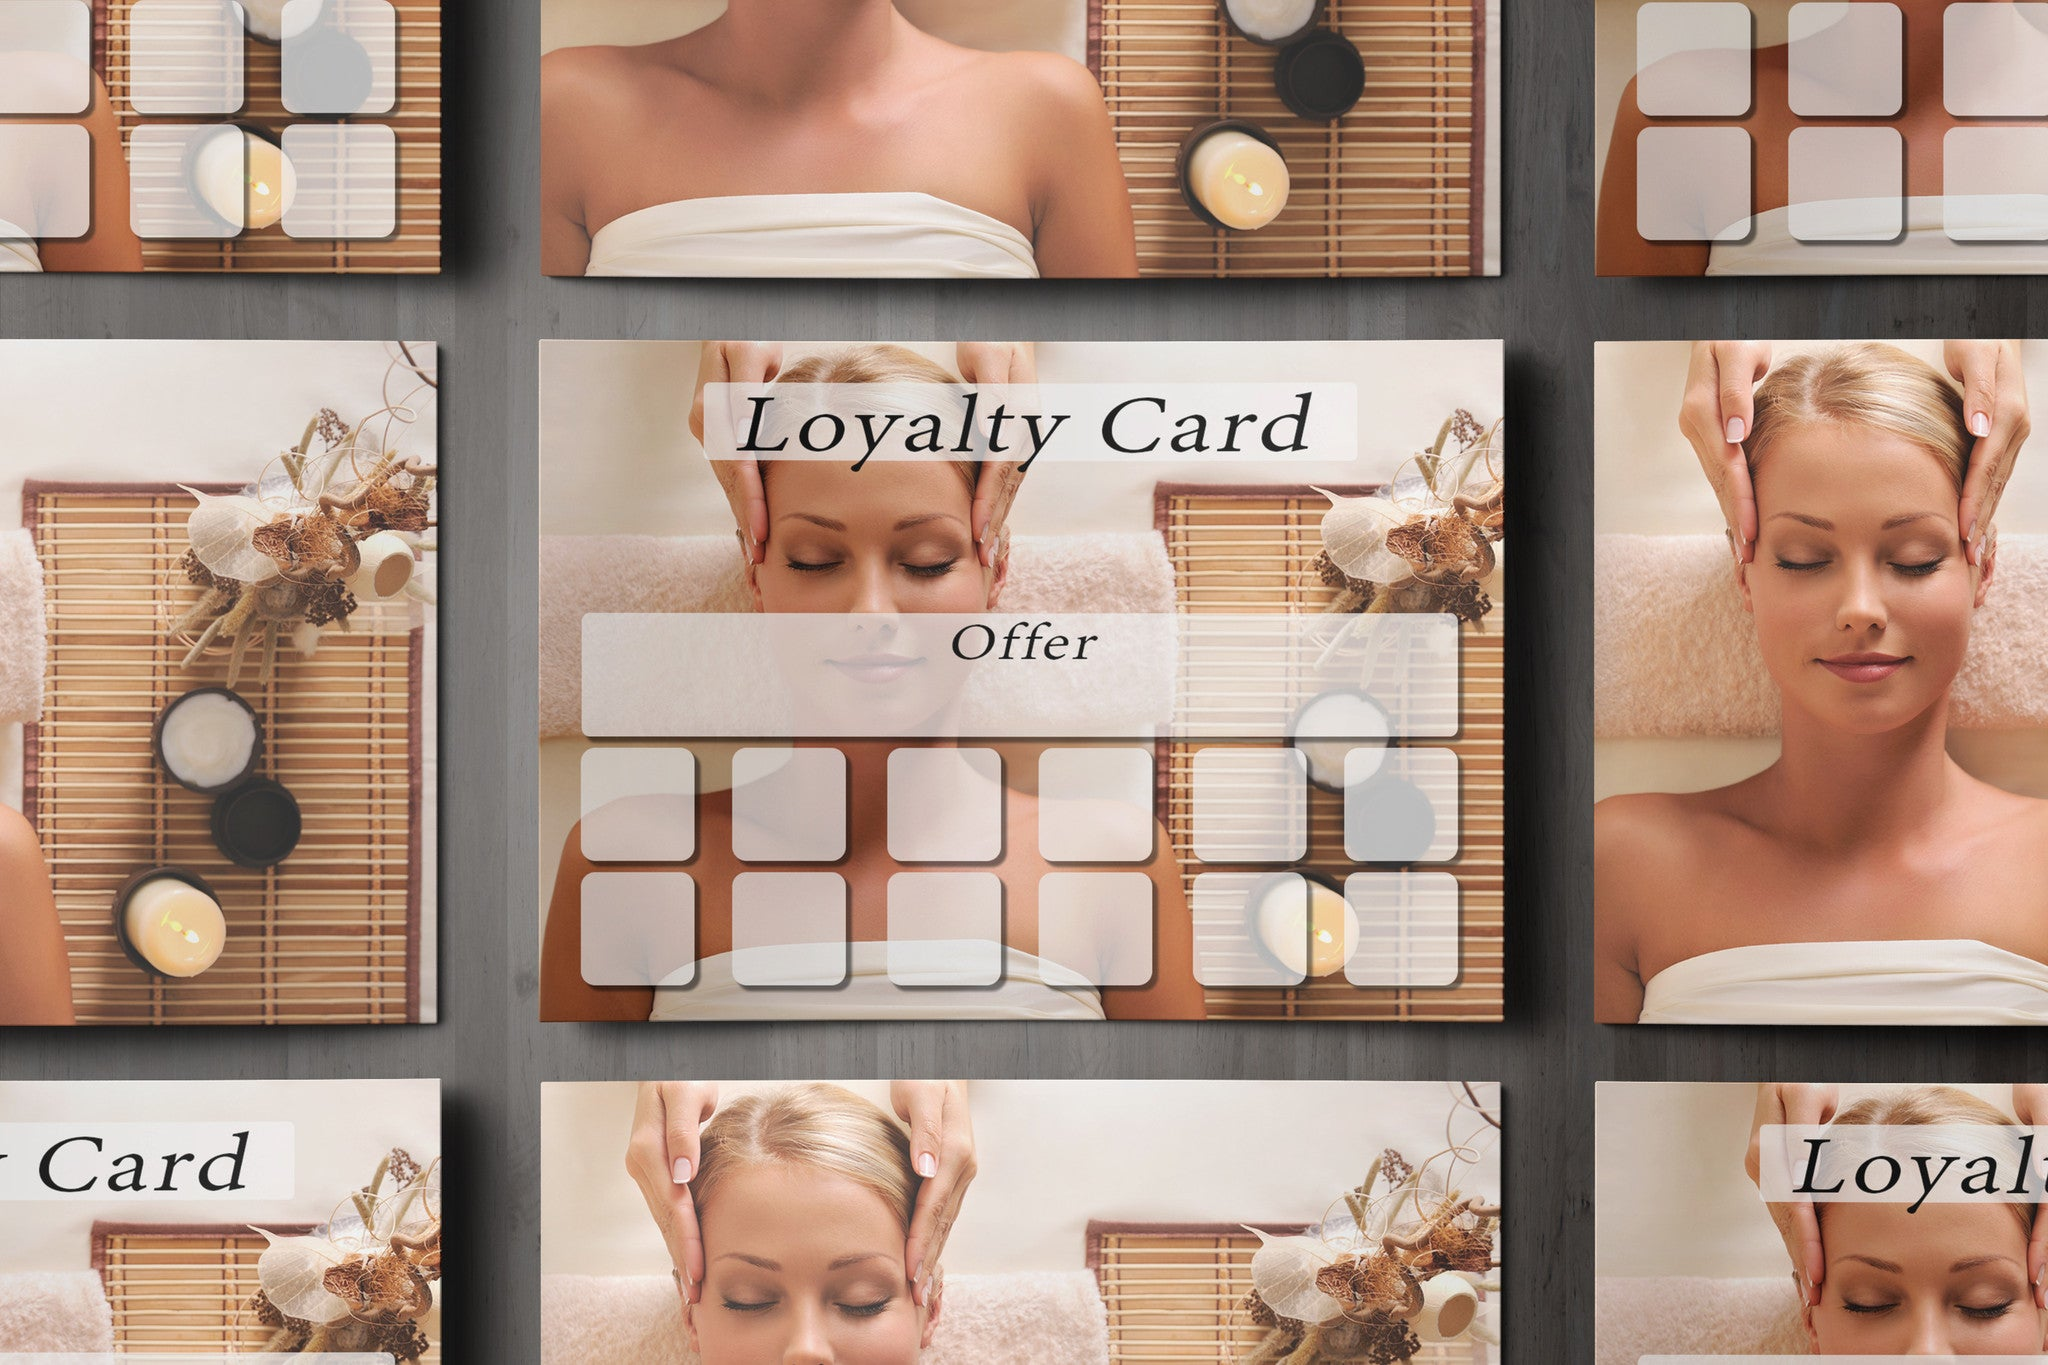 loyalty card for massage beauty salons hairdressers therapists loyalty card for massage beauty salons hairdressers therapists